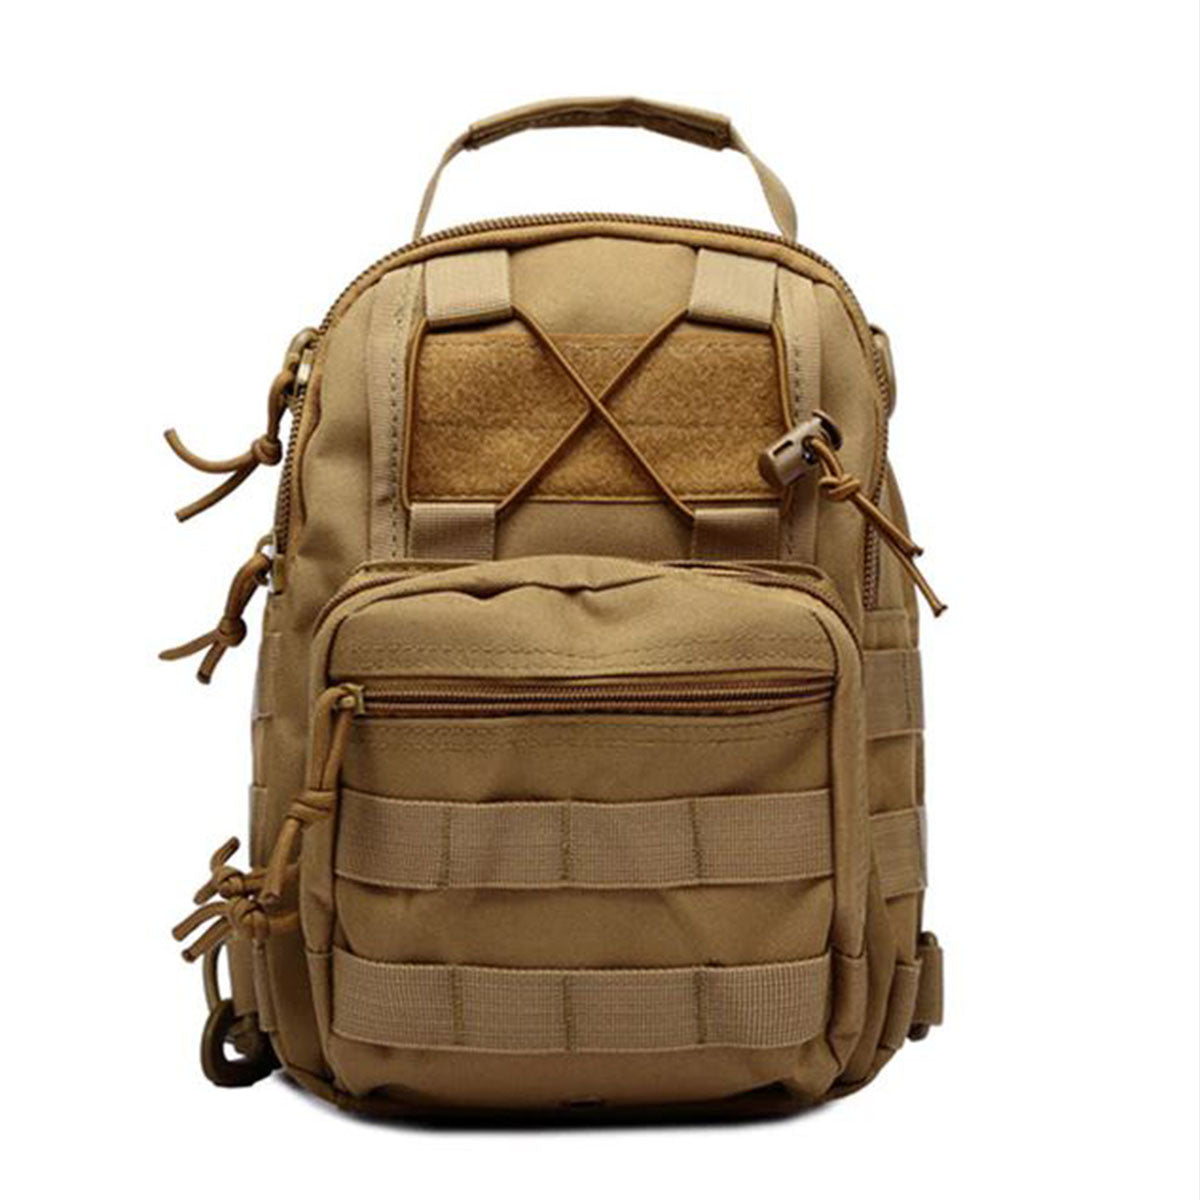 Military Shoulder Bag for Camping